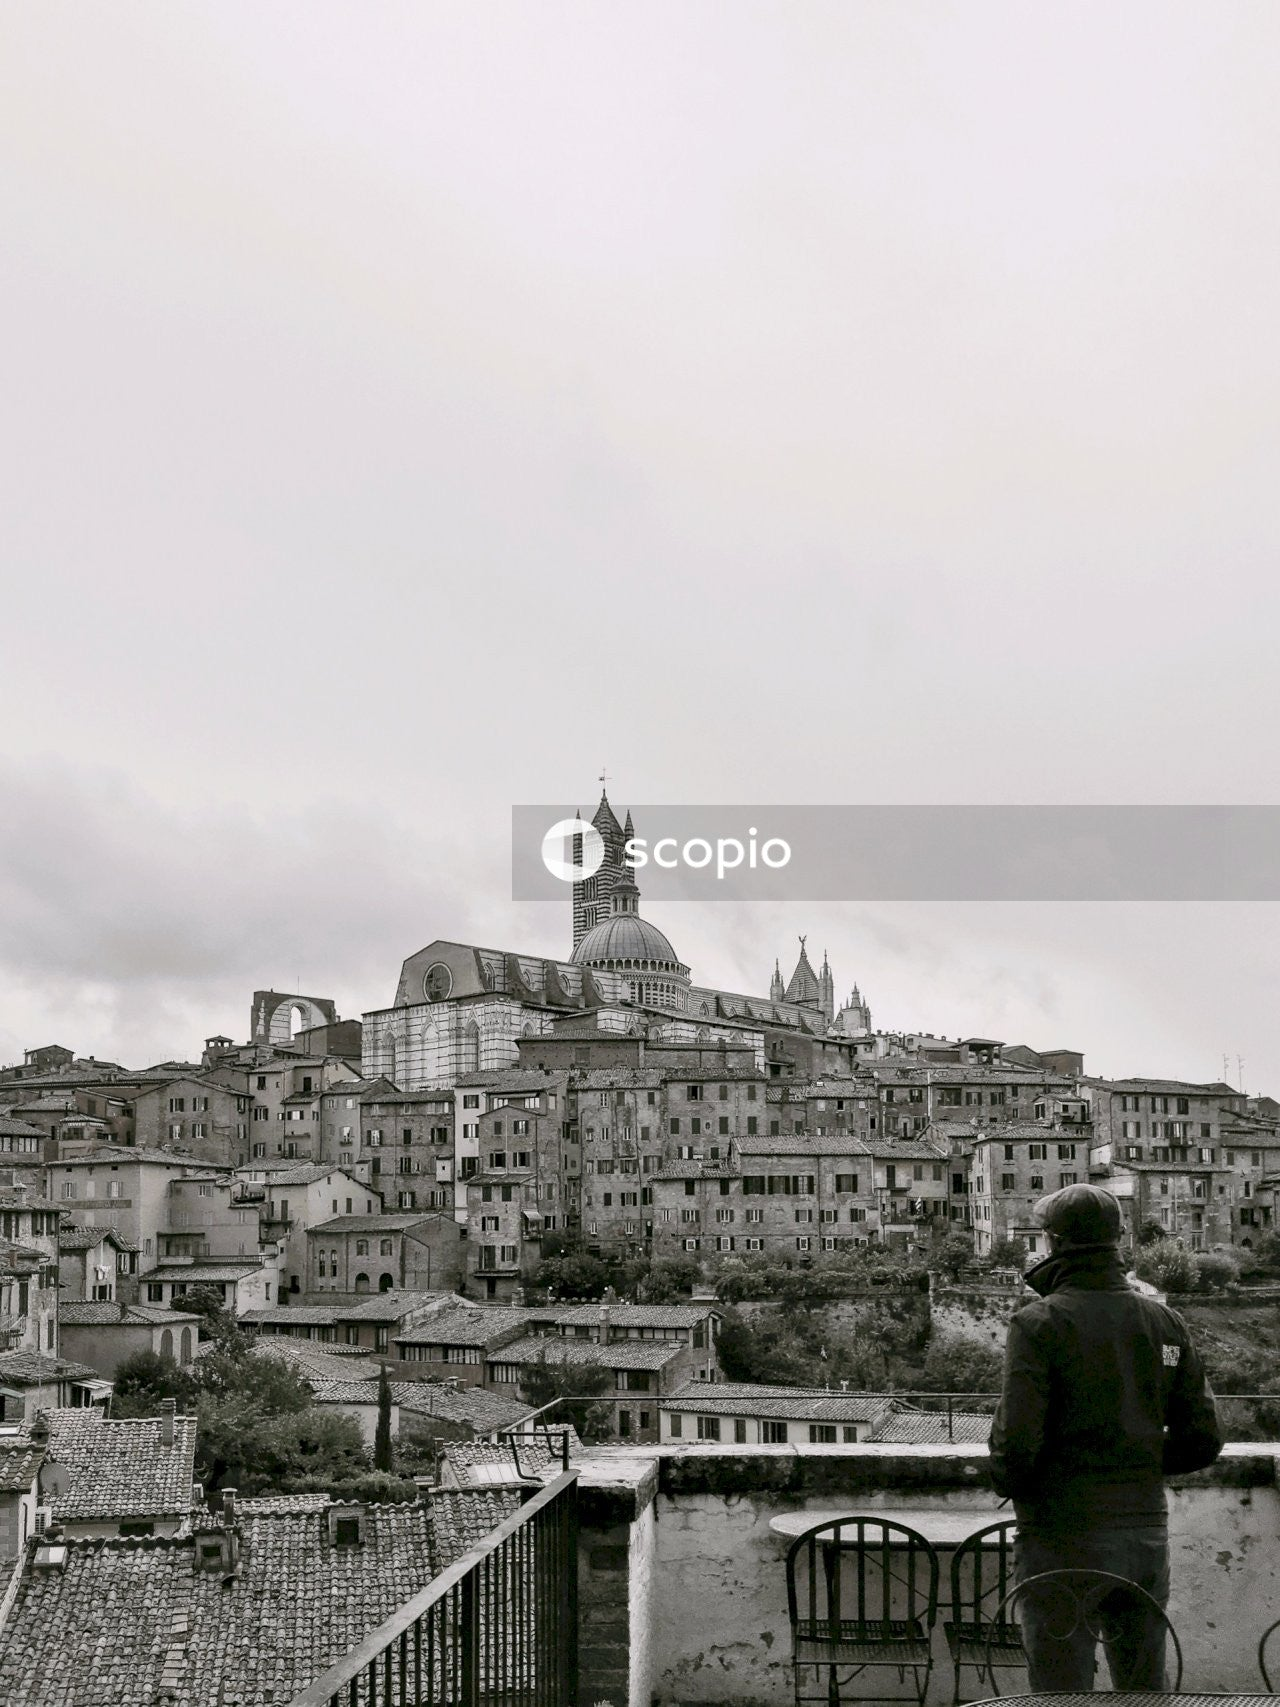 Grayscale photo of a city at a hill